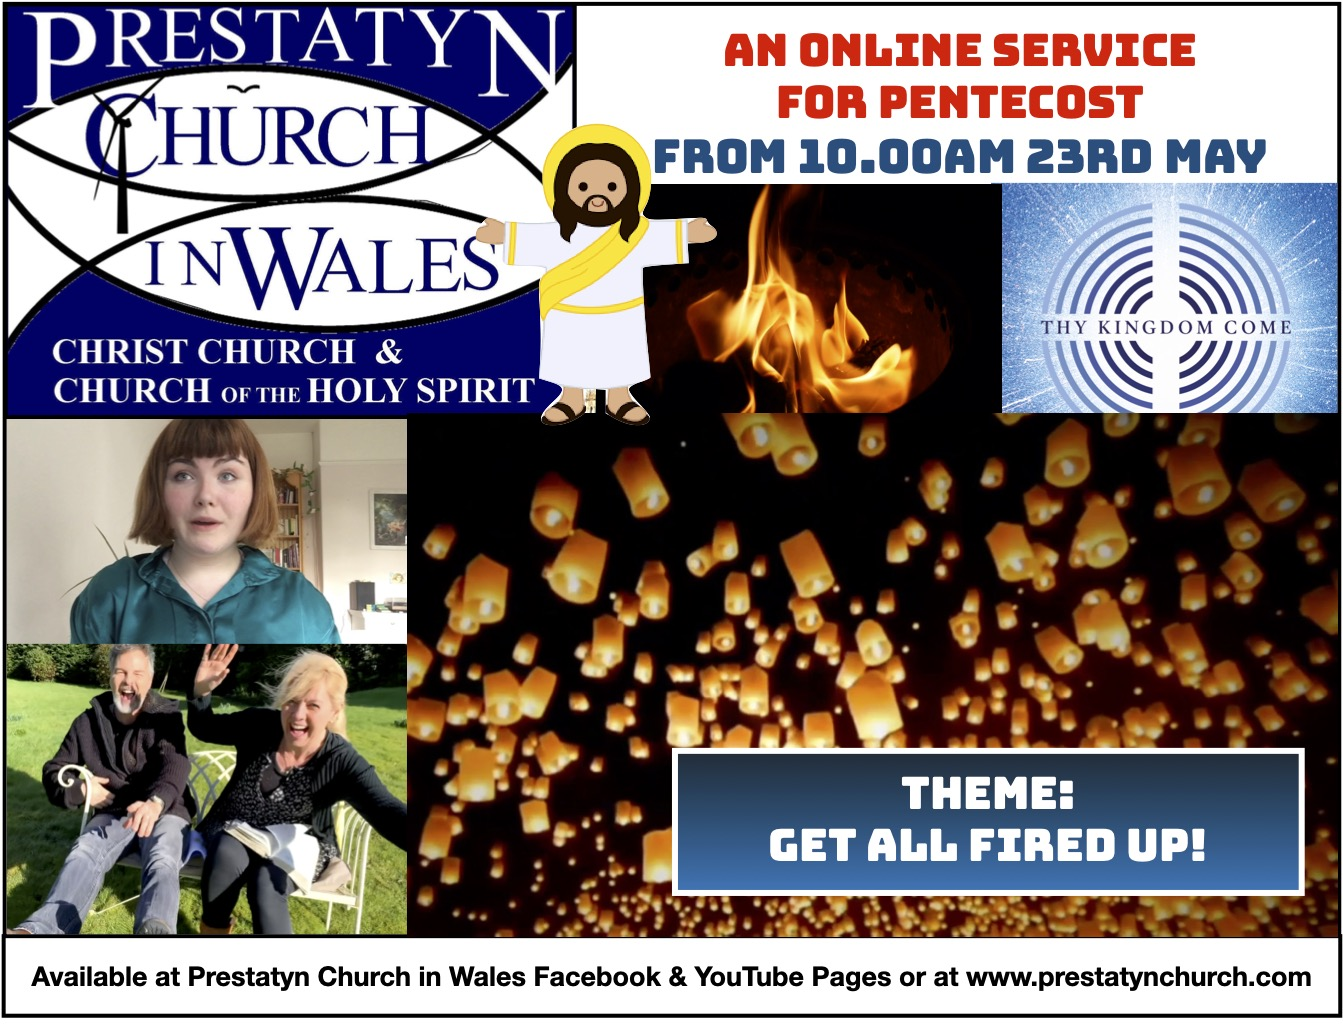 """Image with text. Text reads: """"Prestatyn Church In Wales."""" """"An Online Service for Pentecost. From 10:00 AM 23rd May."""" """"Theme: Get All Fired Up."""" """"Available at Prestatyn Church In Wales Facebook & Youtube Pages or at www.prestatynchurch.com"""""""